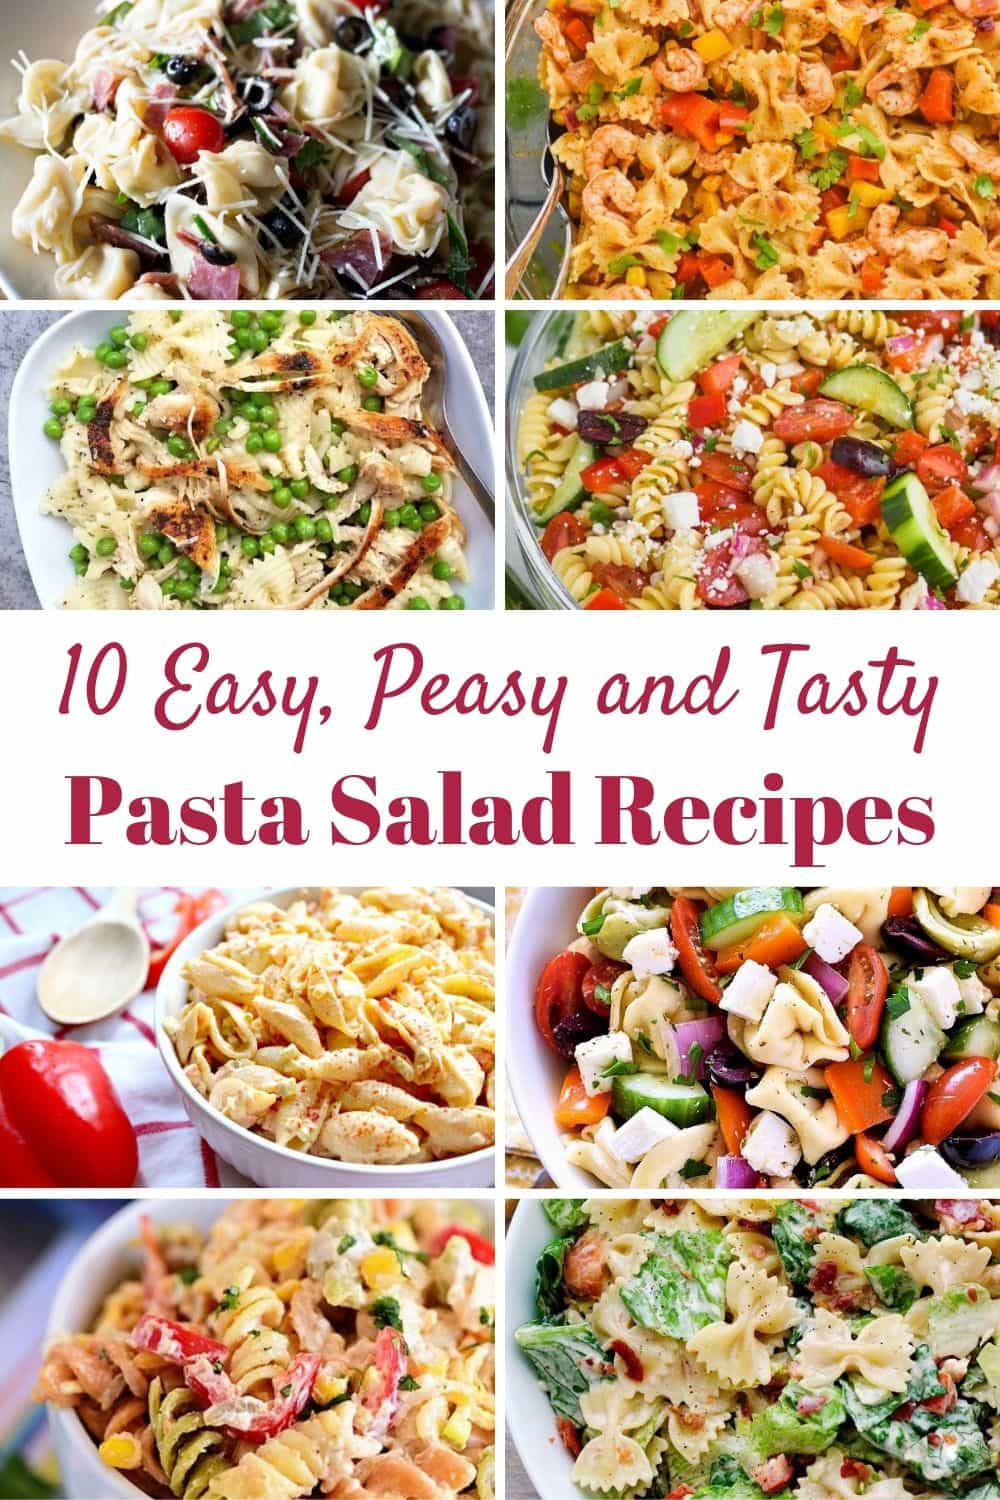 10 Tasty Pasta Salad Recipes That Are Easy To Make